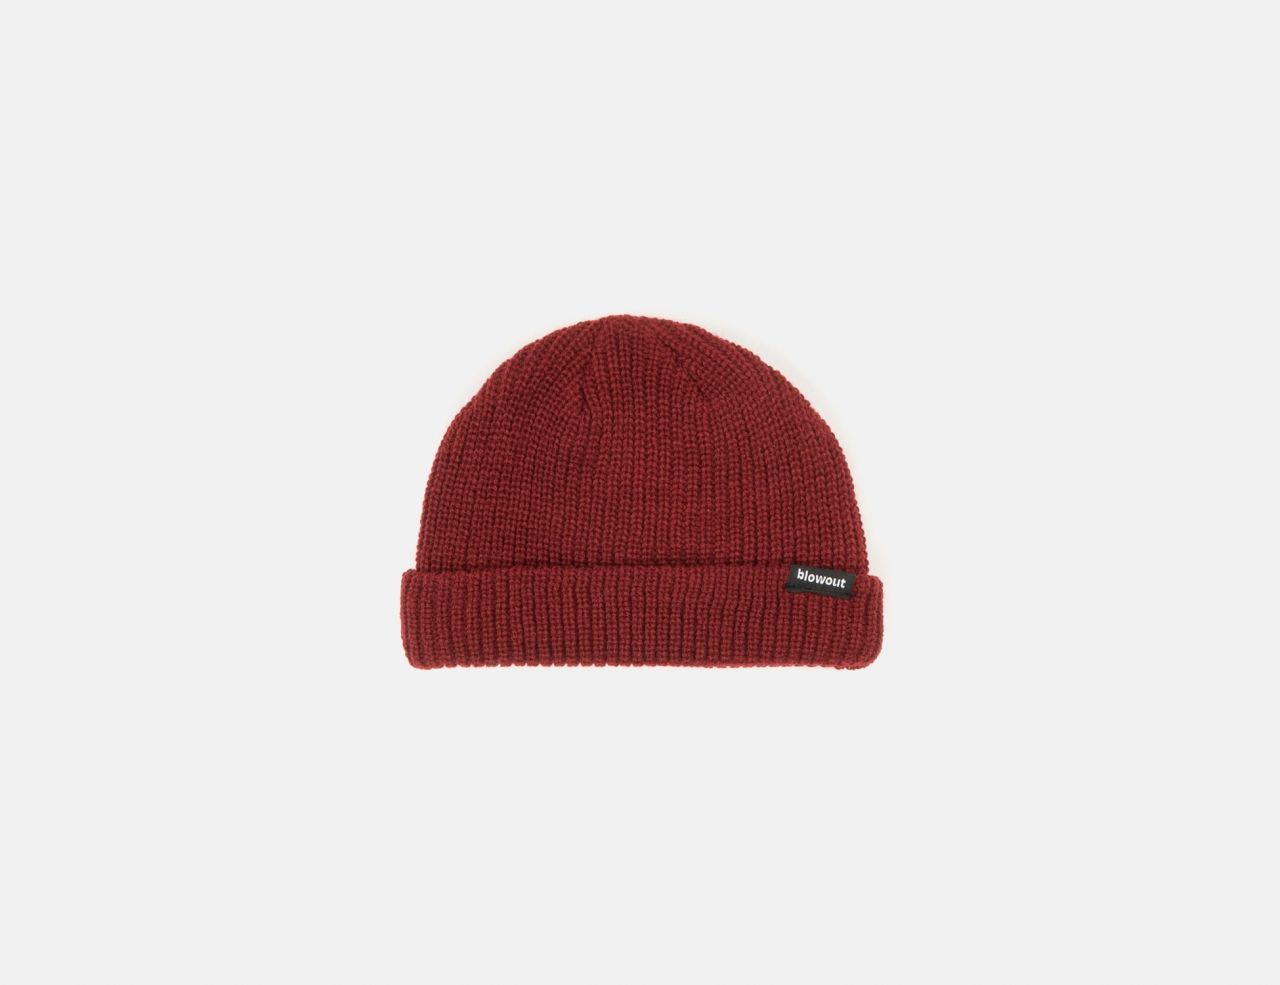 Blowout Fisherman Beanie - Maroon